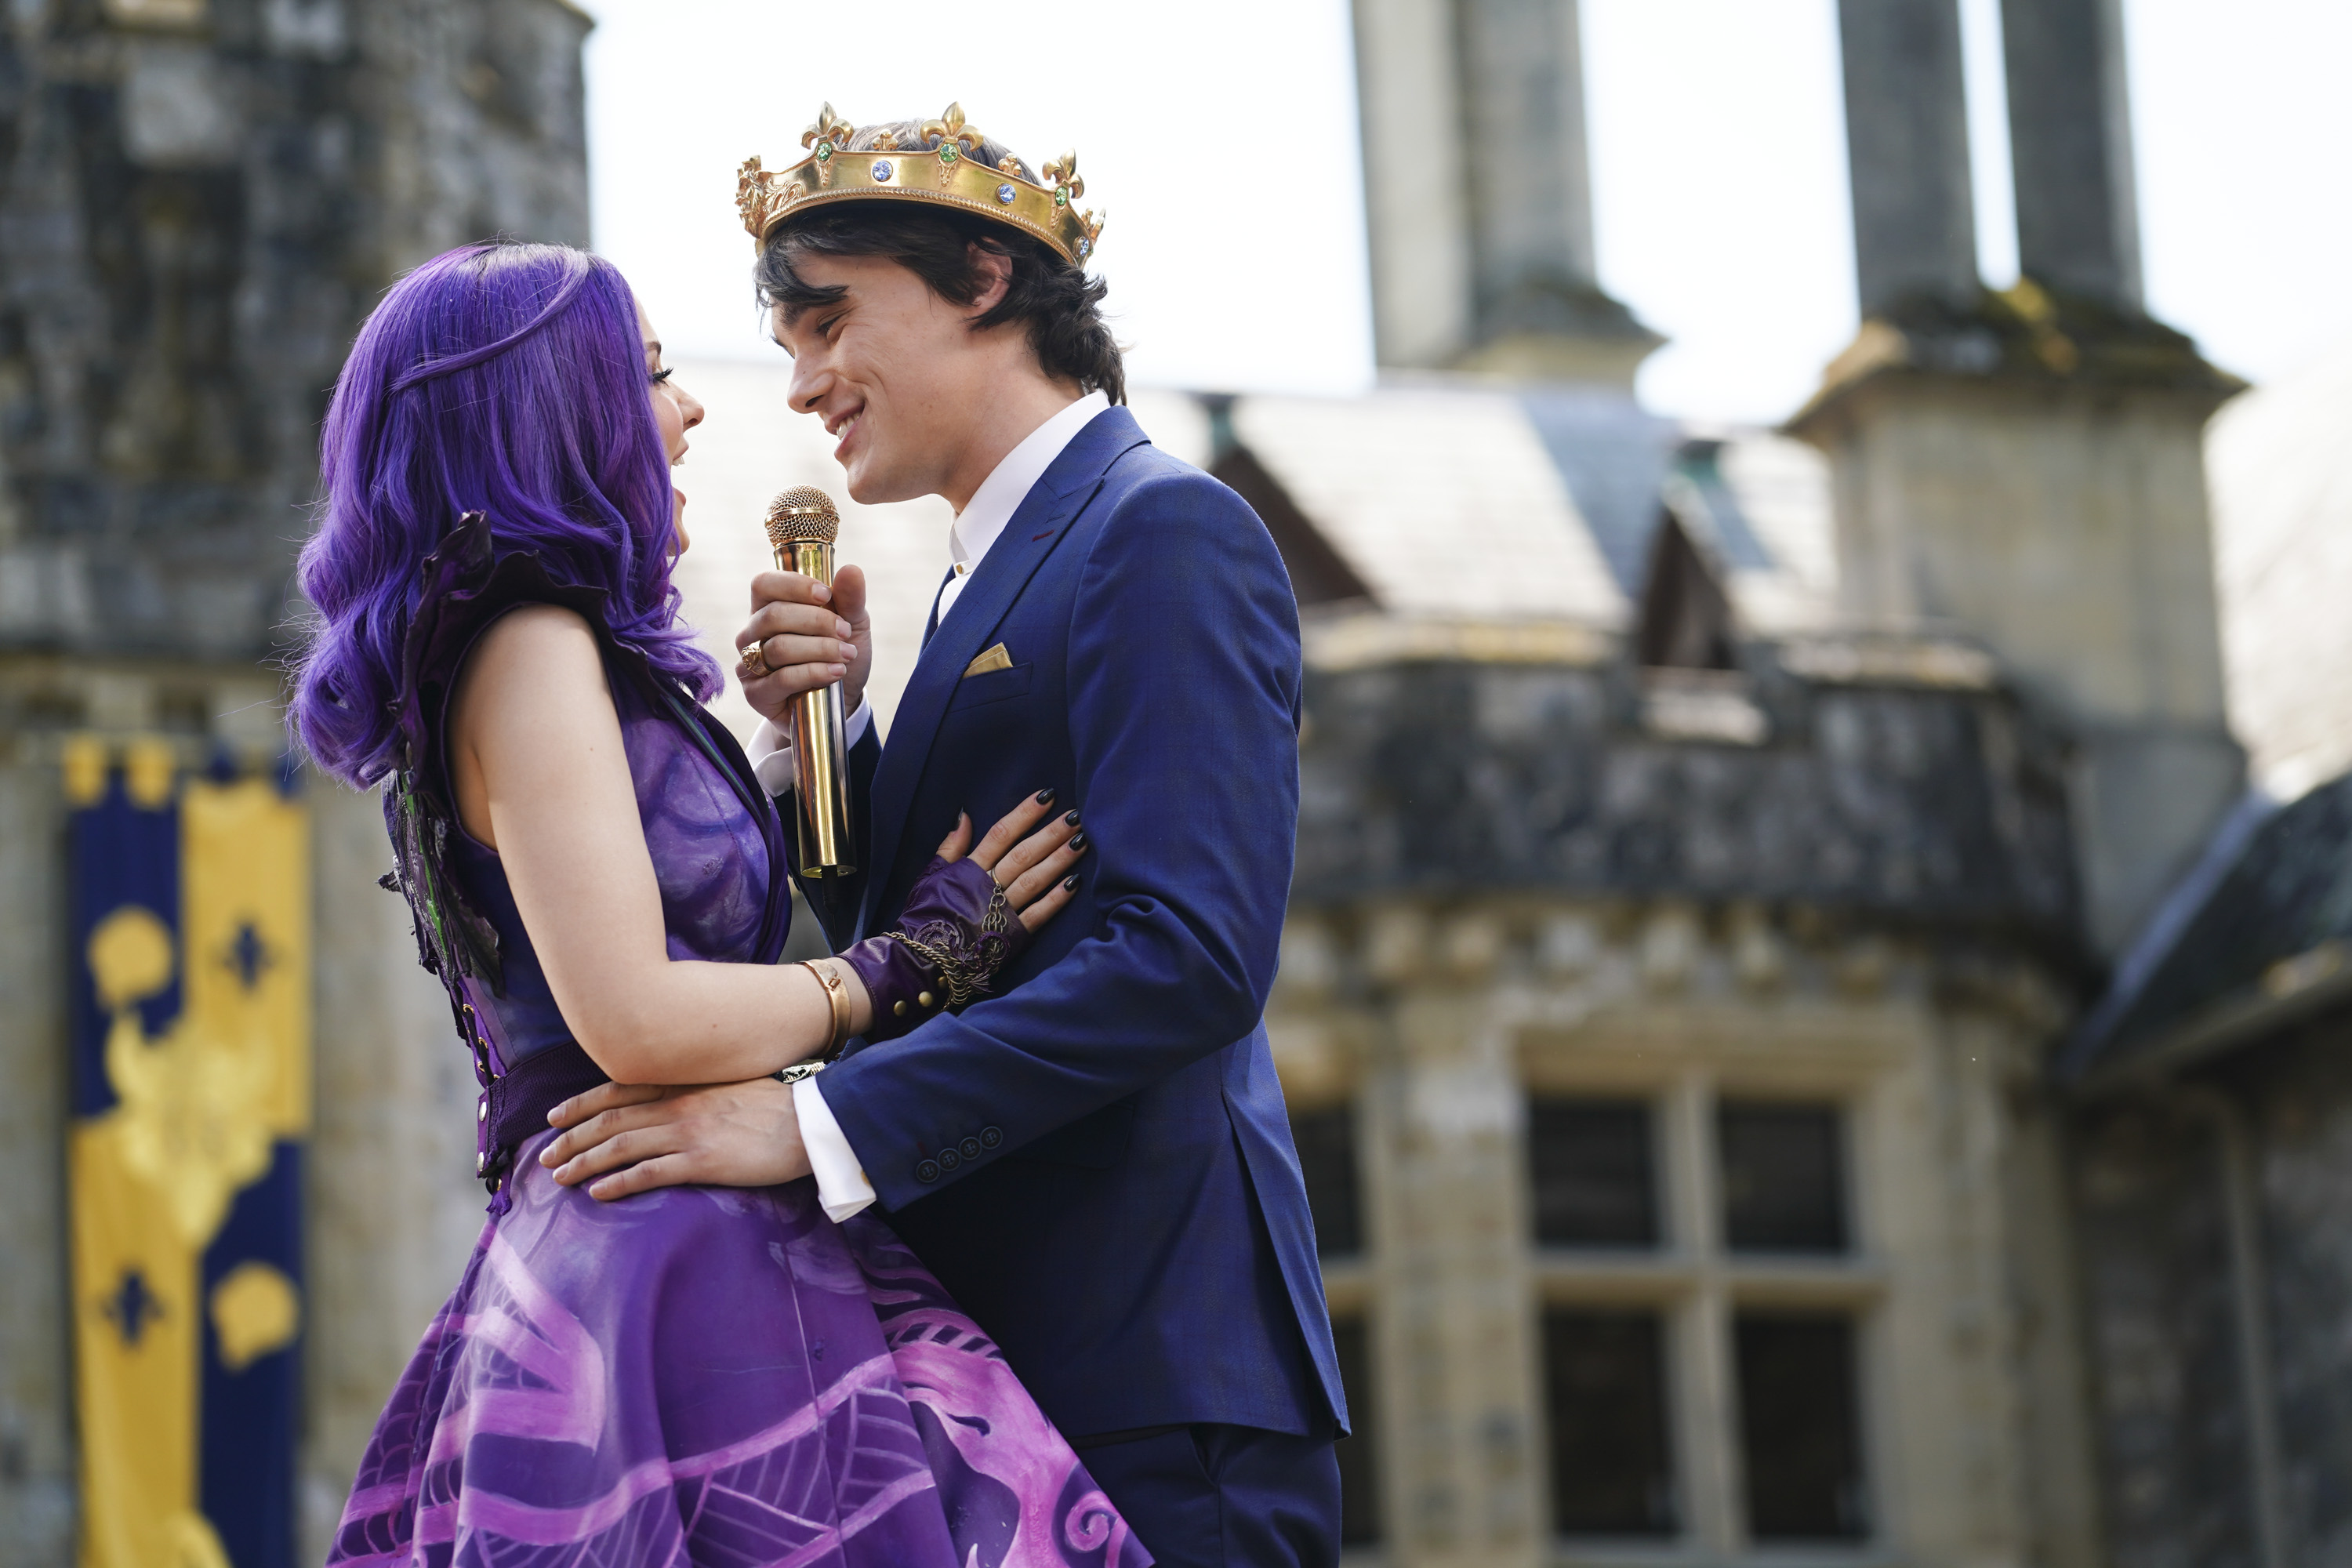 Early Look: Disney Channel Shares New Photos Ahead Of